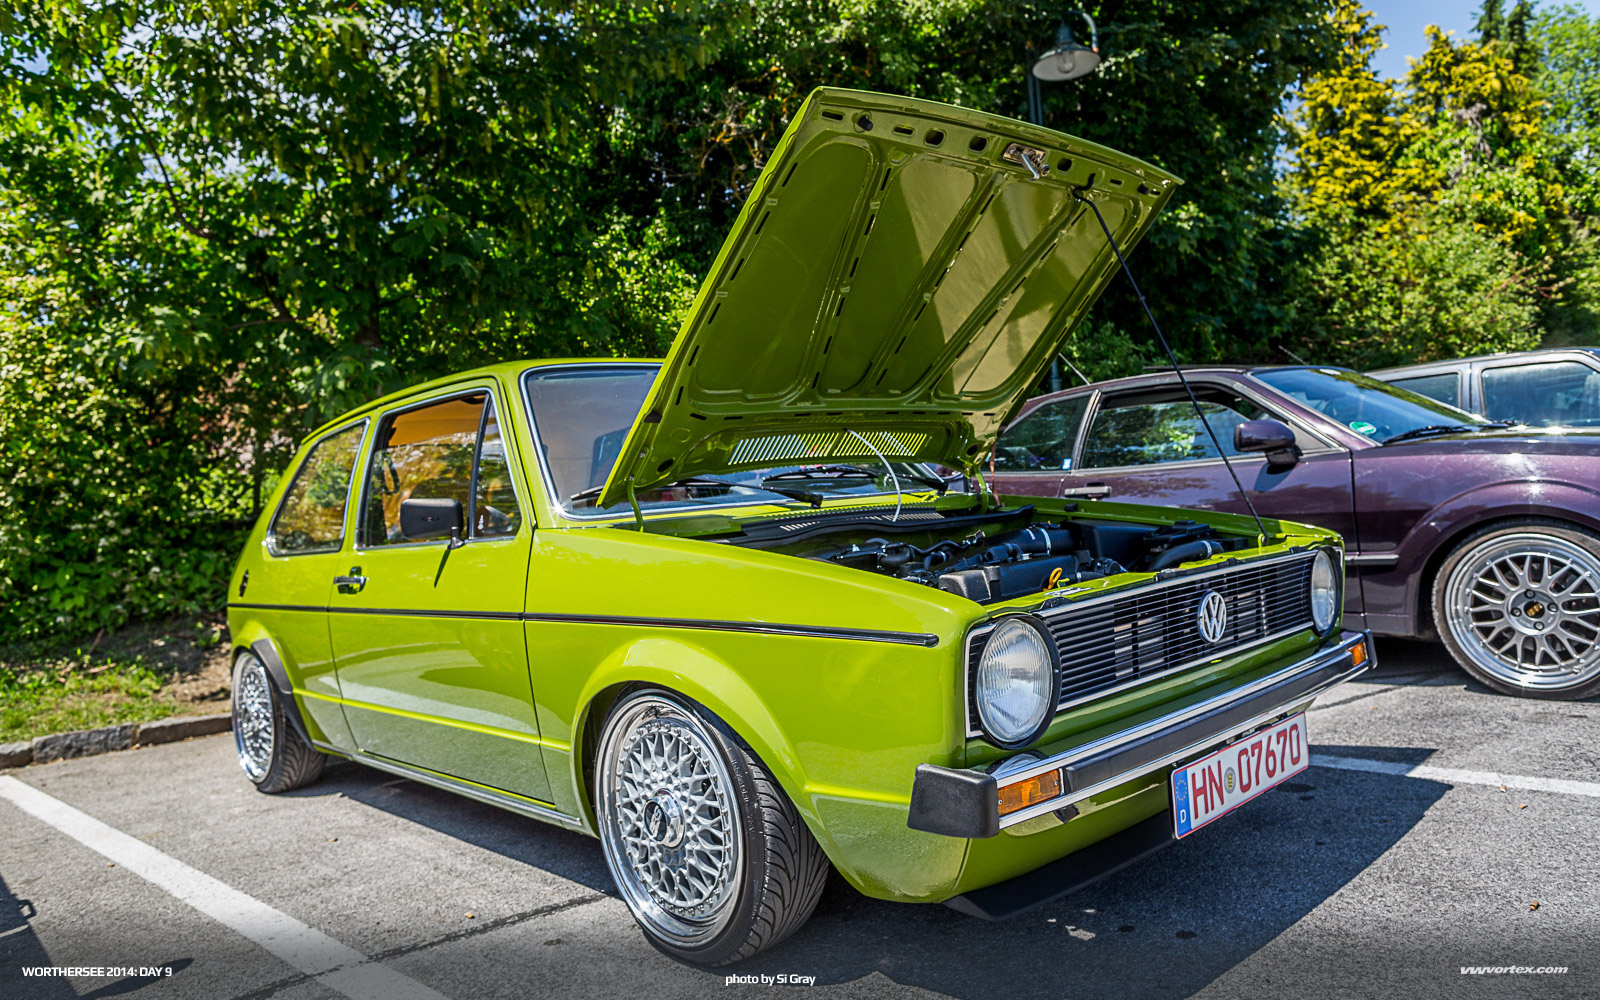 2014-Worthersee-Day-9-Si-Gray-383